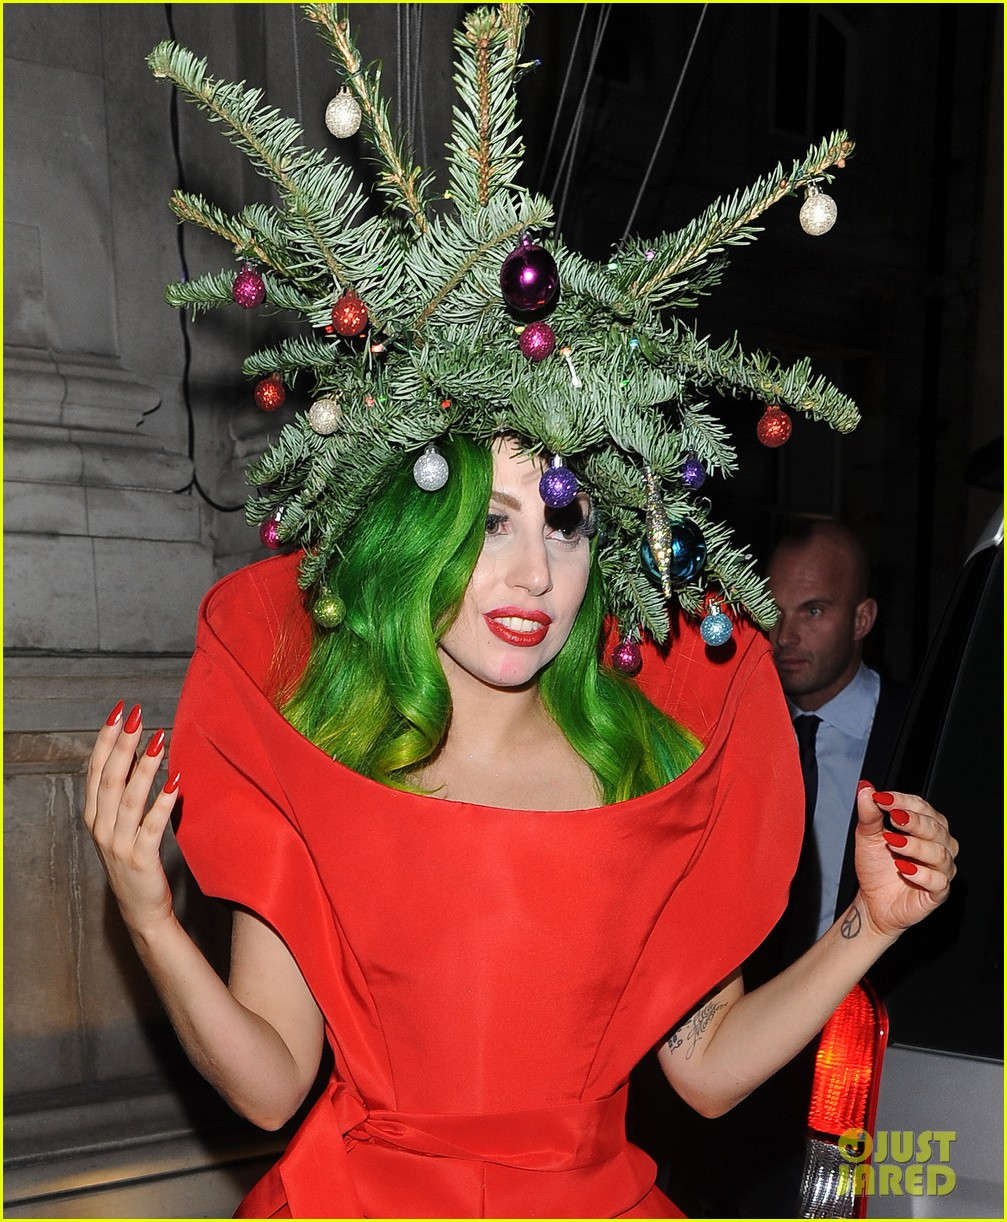 Full Sized Photo Of Lady Gaga Dresses As Christmas Tree After Capital Fm Ball 06 Photo 3007984 Just Jared